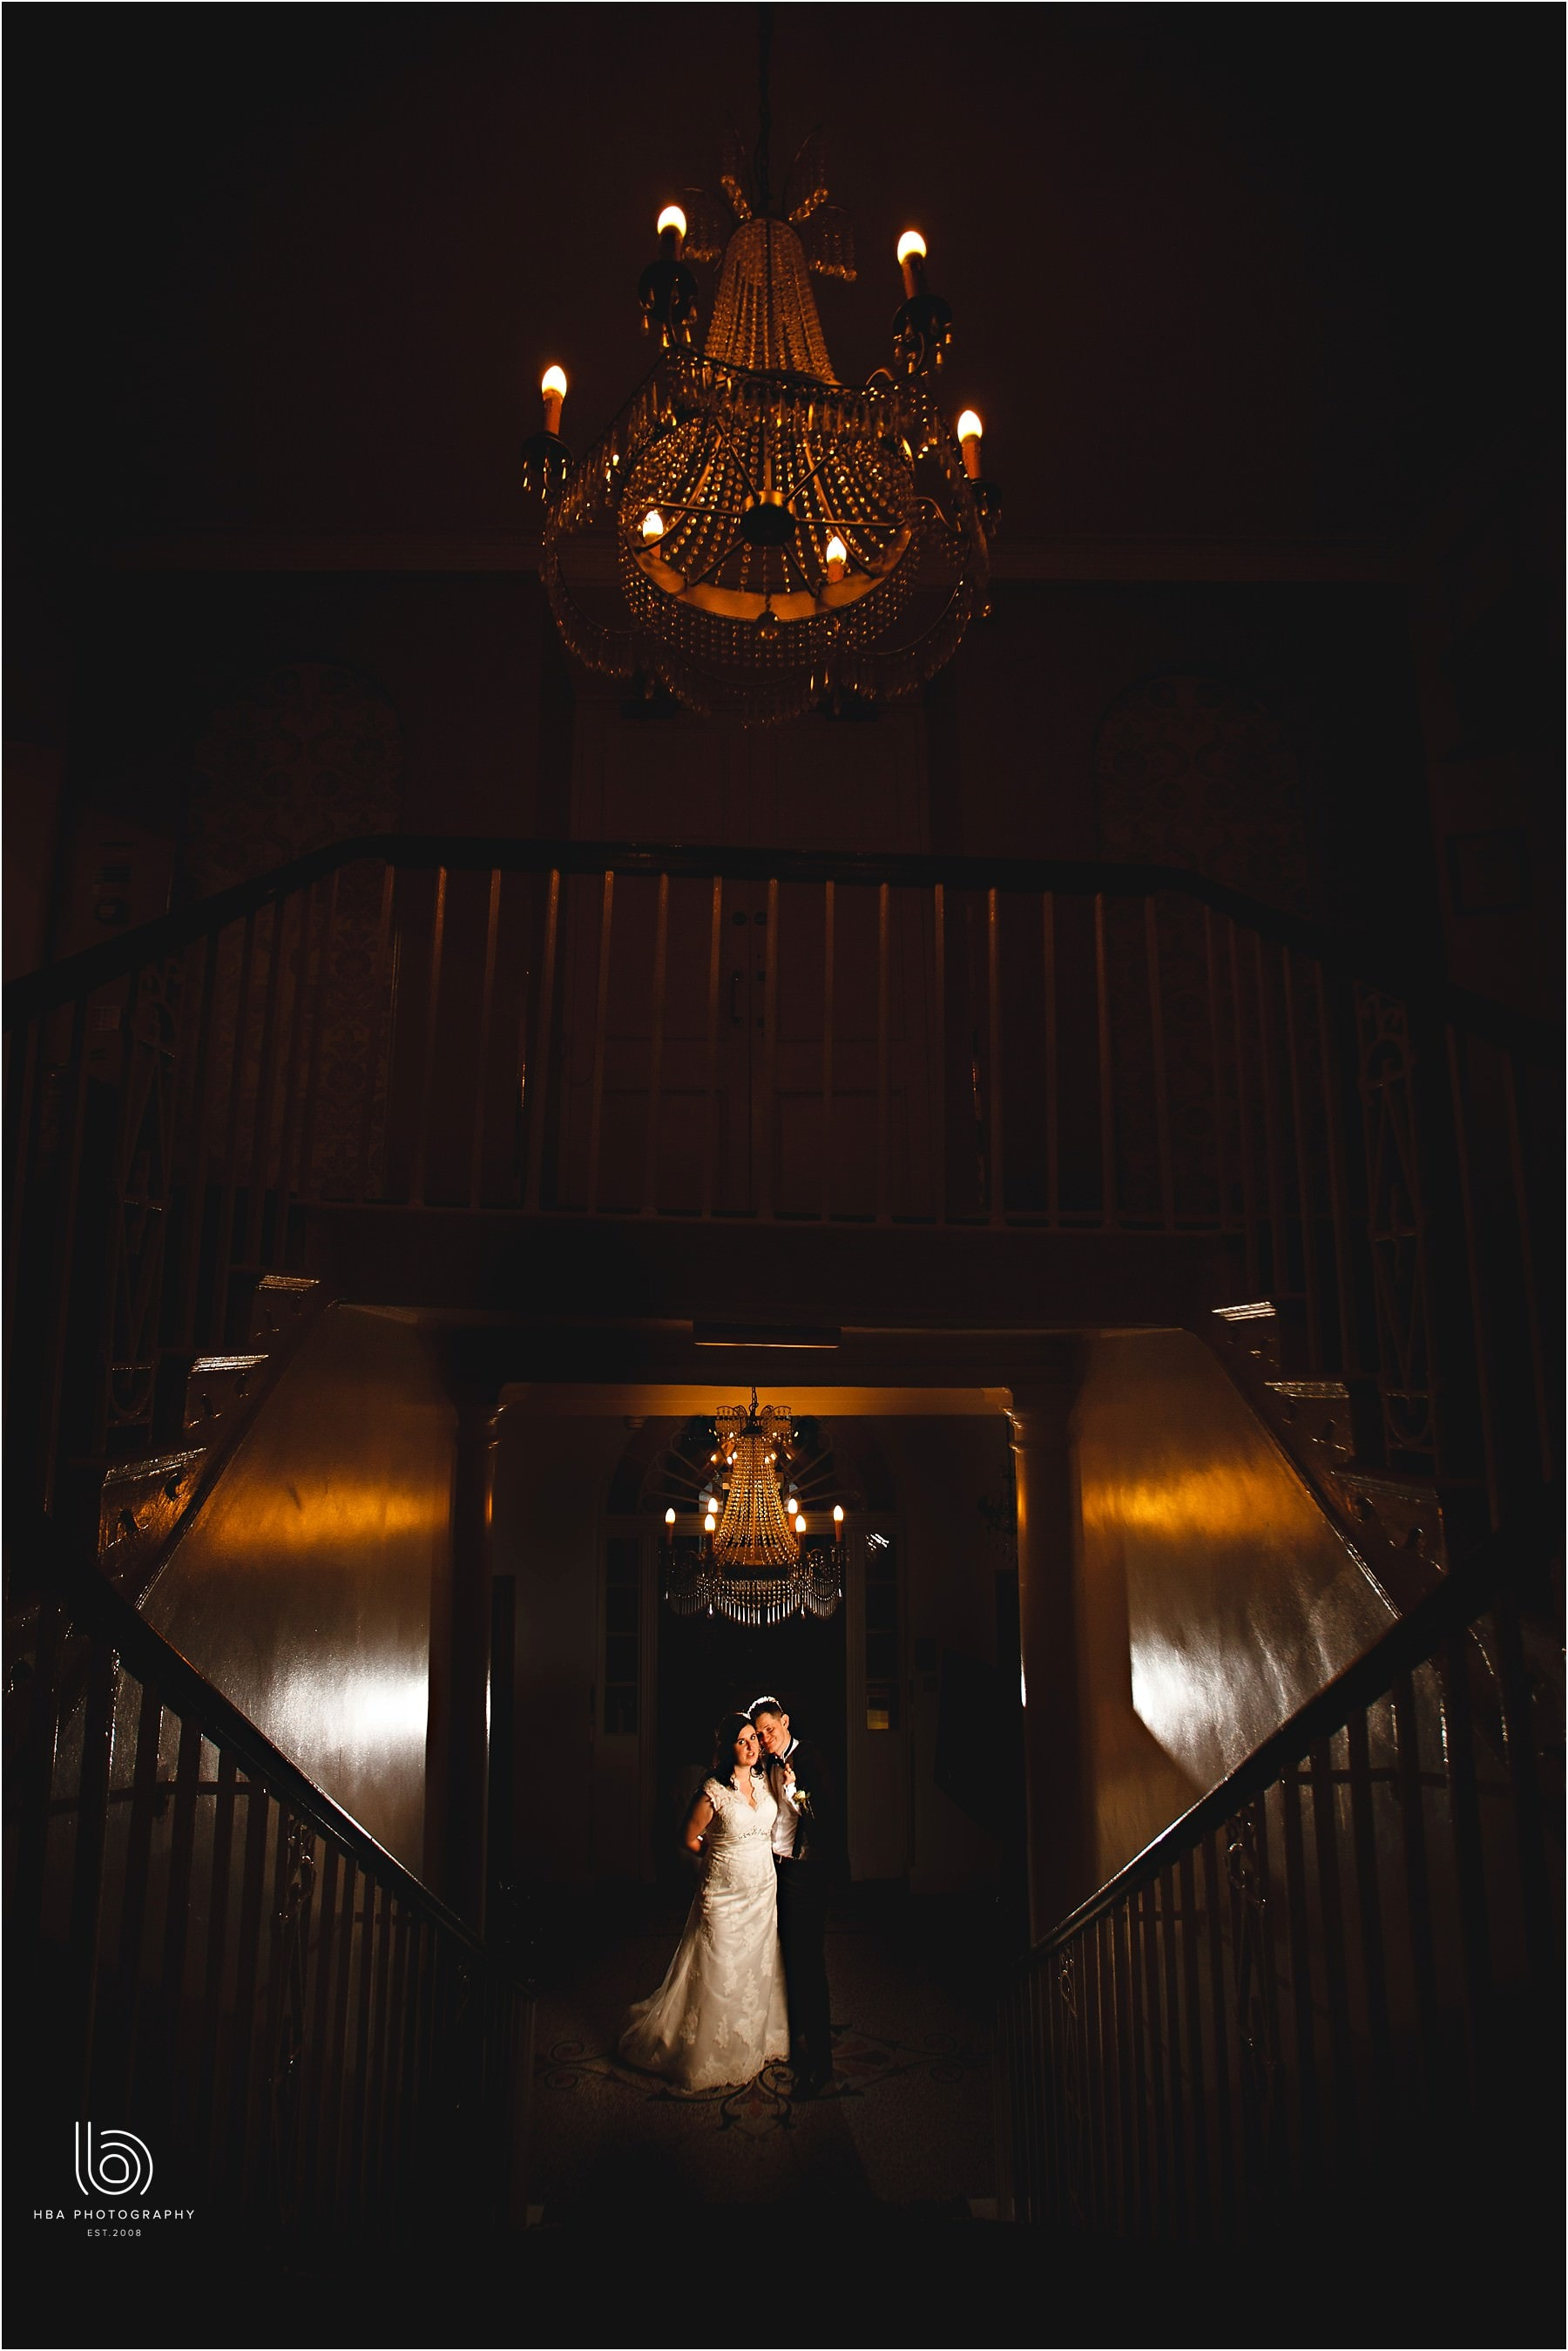 a dark photo of the bride and groom stood in orange lights in the hotel reception